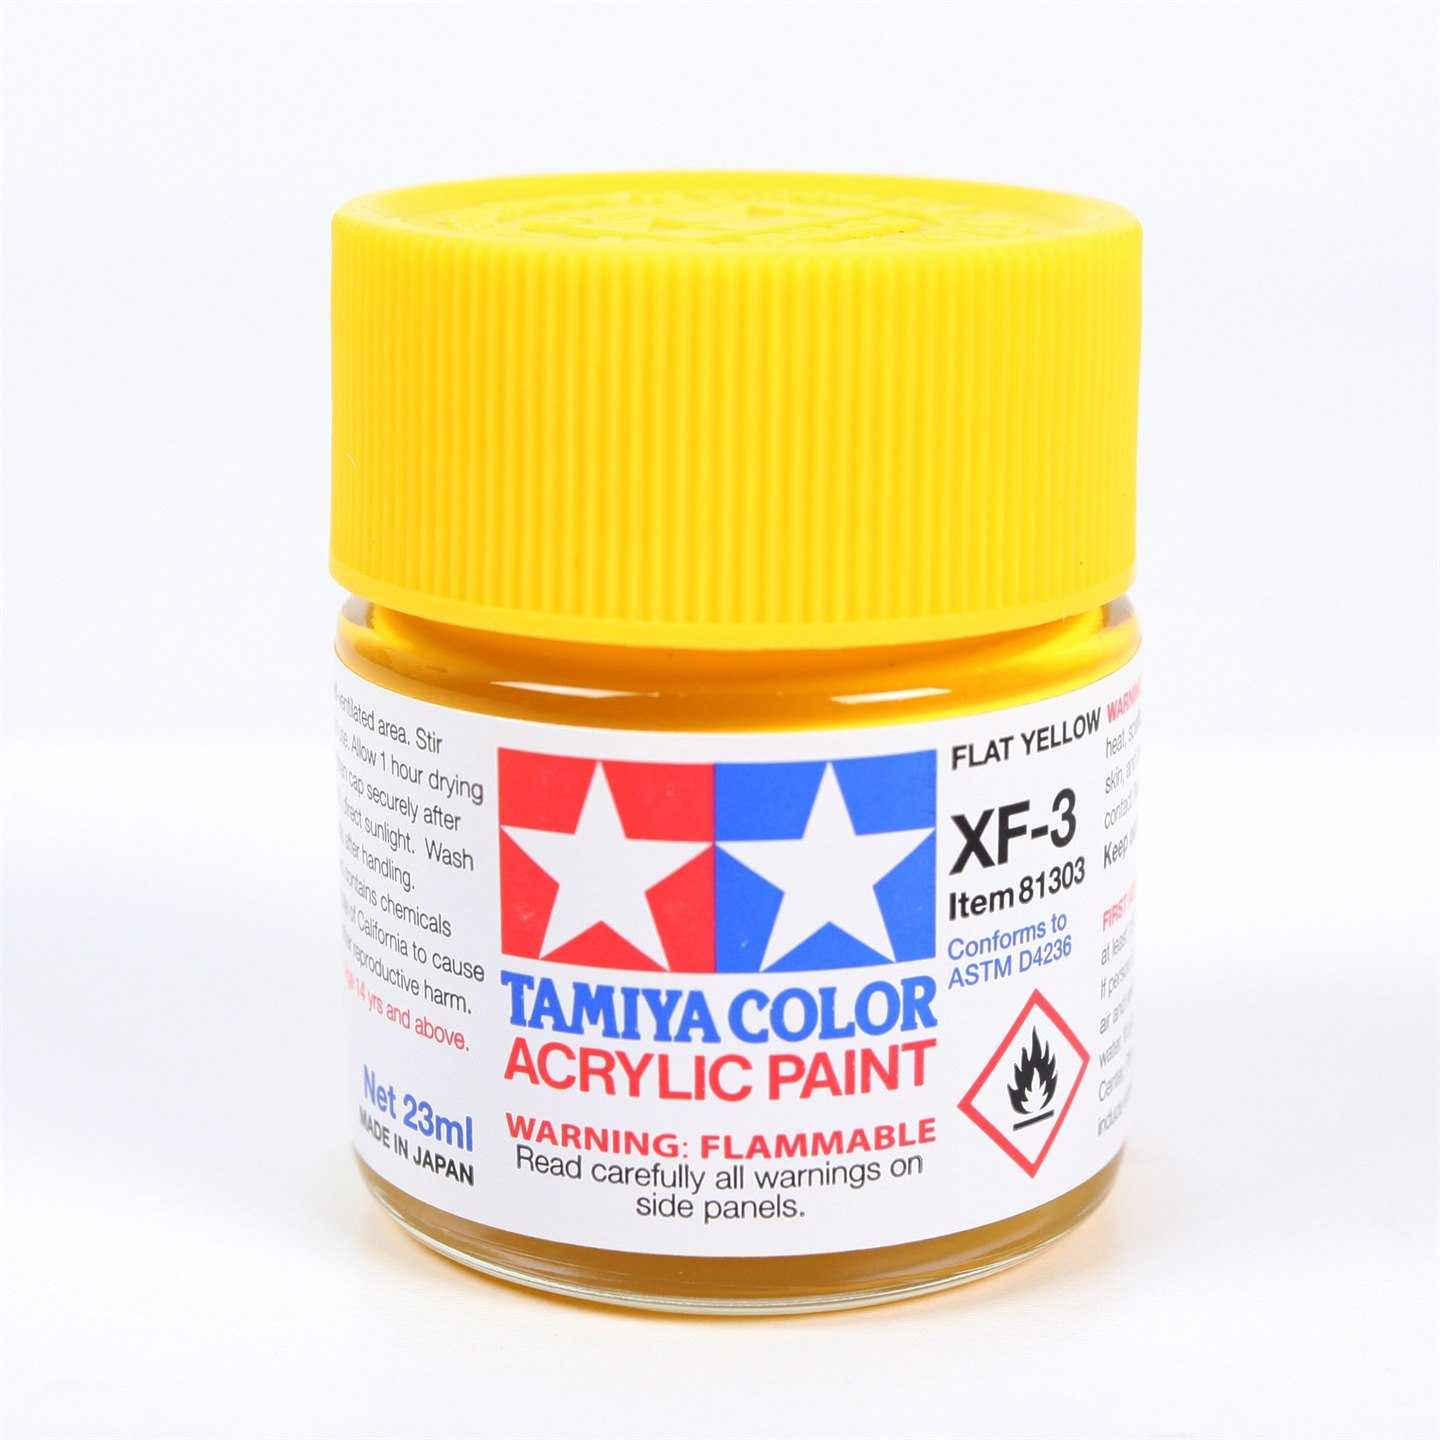 Tamiya Color Acrylic Paint XF-3 Flat Yellow (23ML)